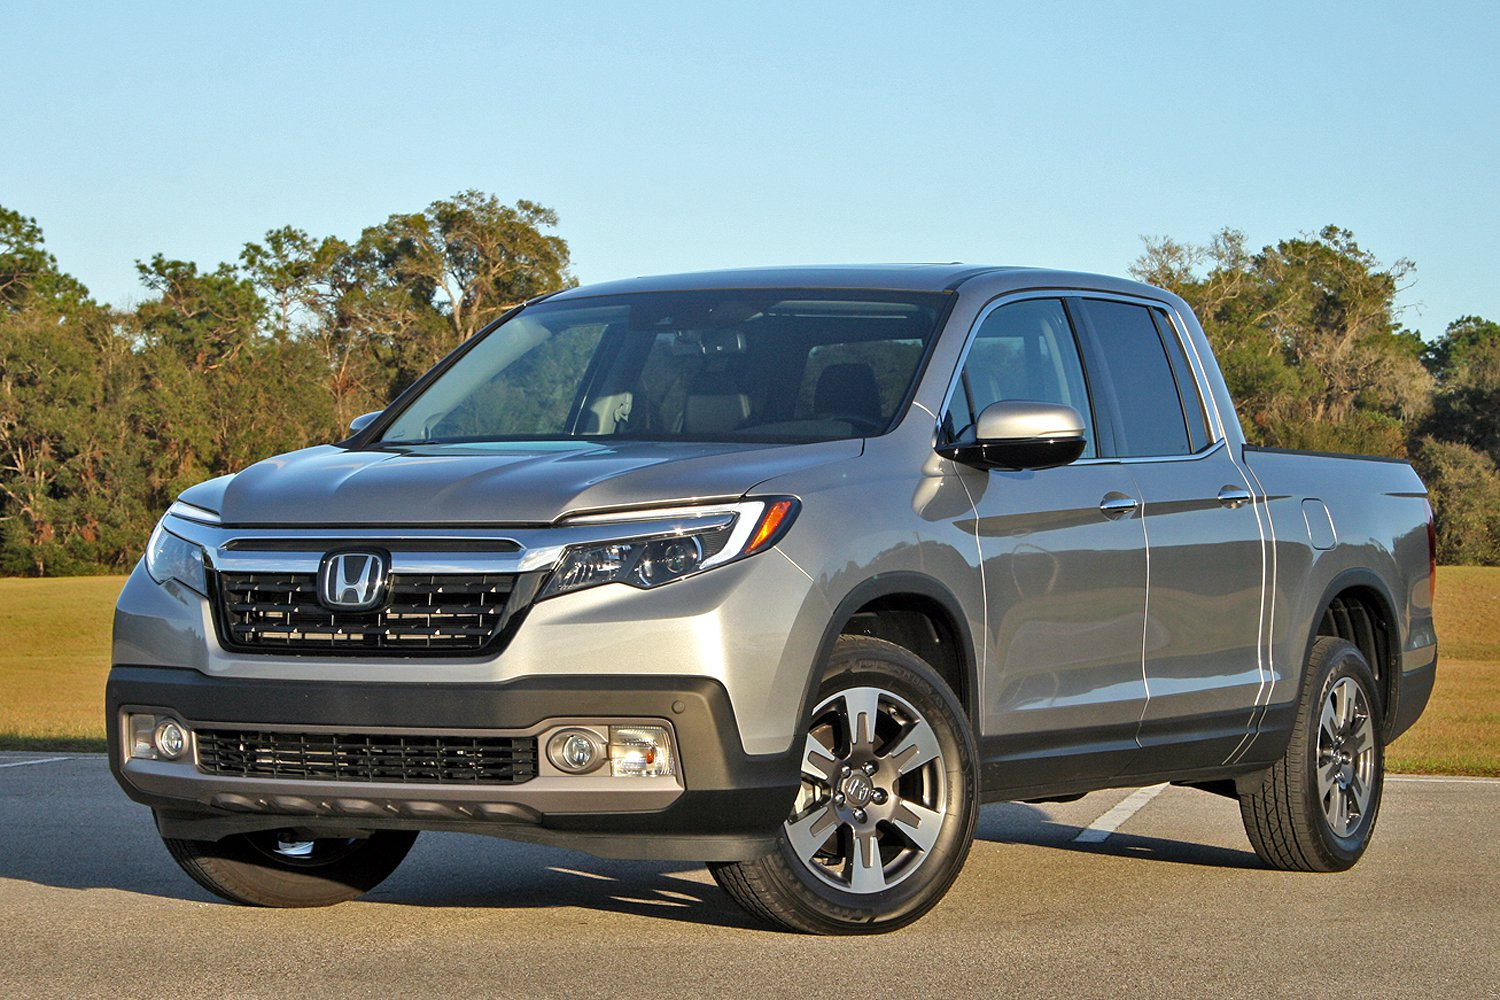 82 Best 2020 Honda Ridgeline Pickup Truck Price Design and Review